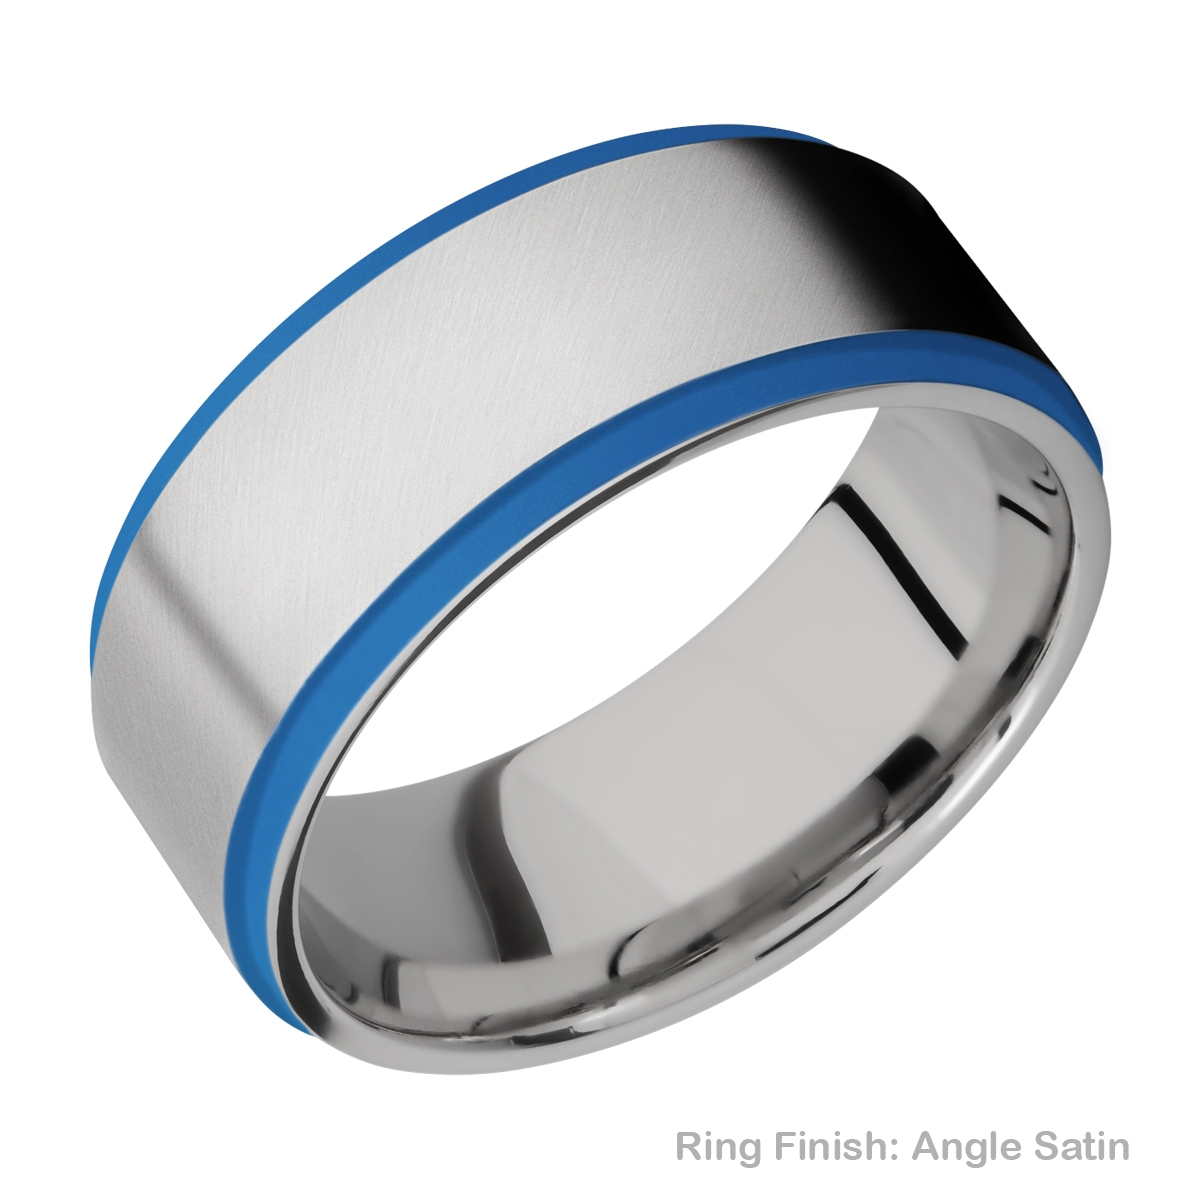 Lashbrook CC10FGE21EDGE/A/CERAKOTE Cobalt Chrome Wedding Ring or Band Alternative View 8